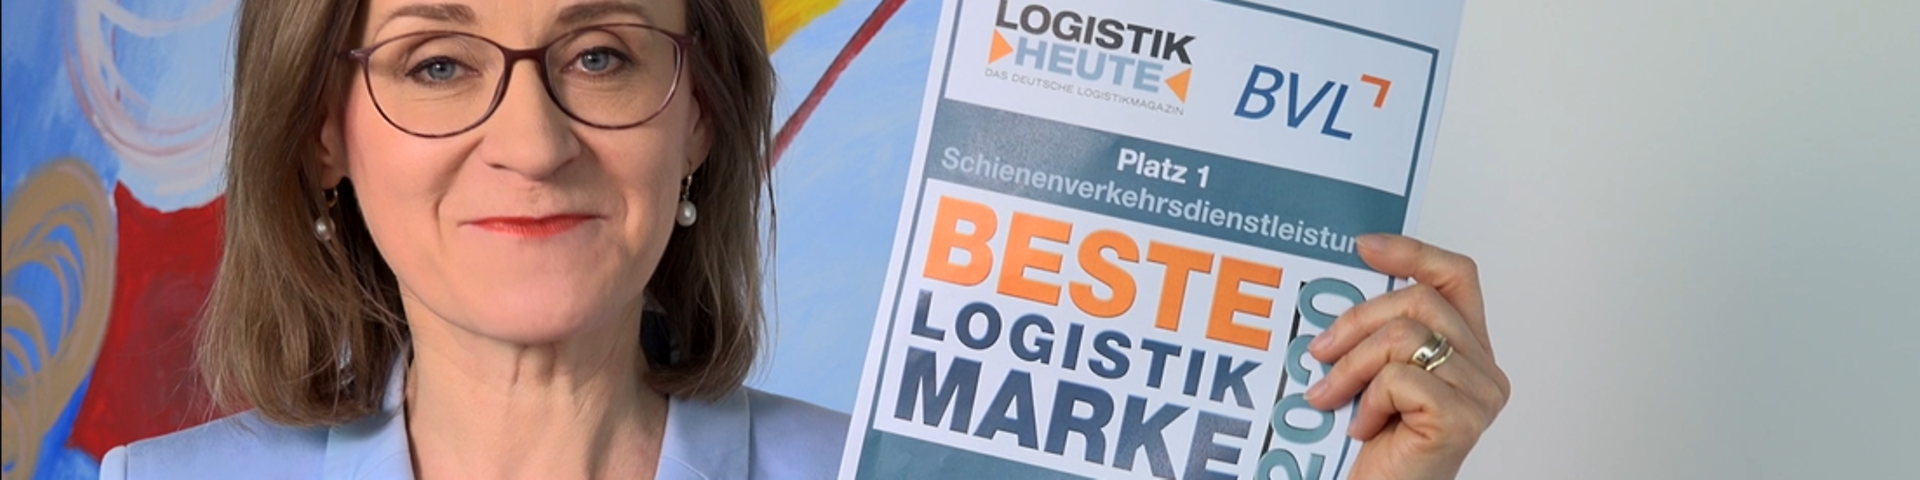 Dr. Sigrid Nikutta shows the award Best Logistcs Brand 2020